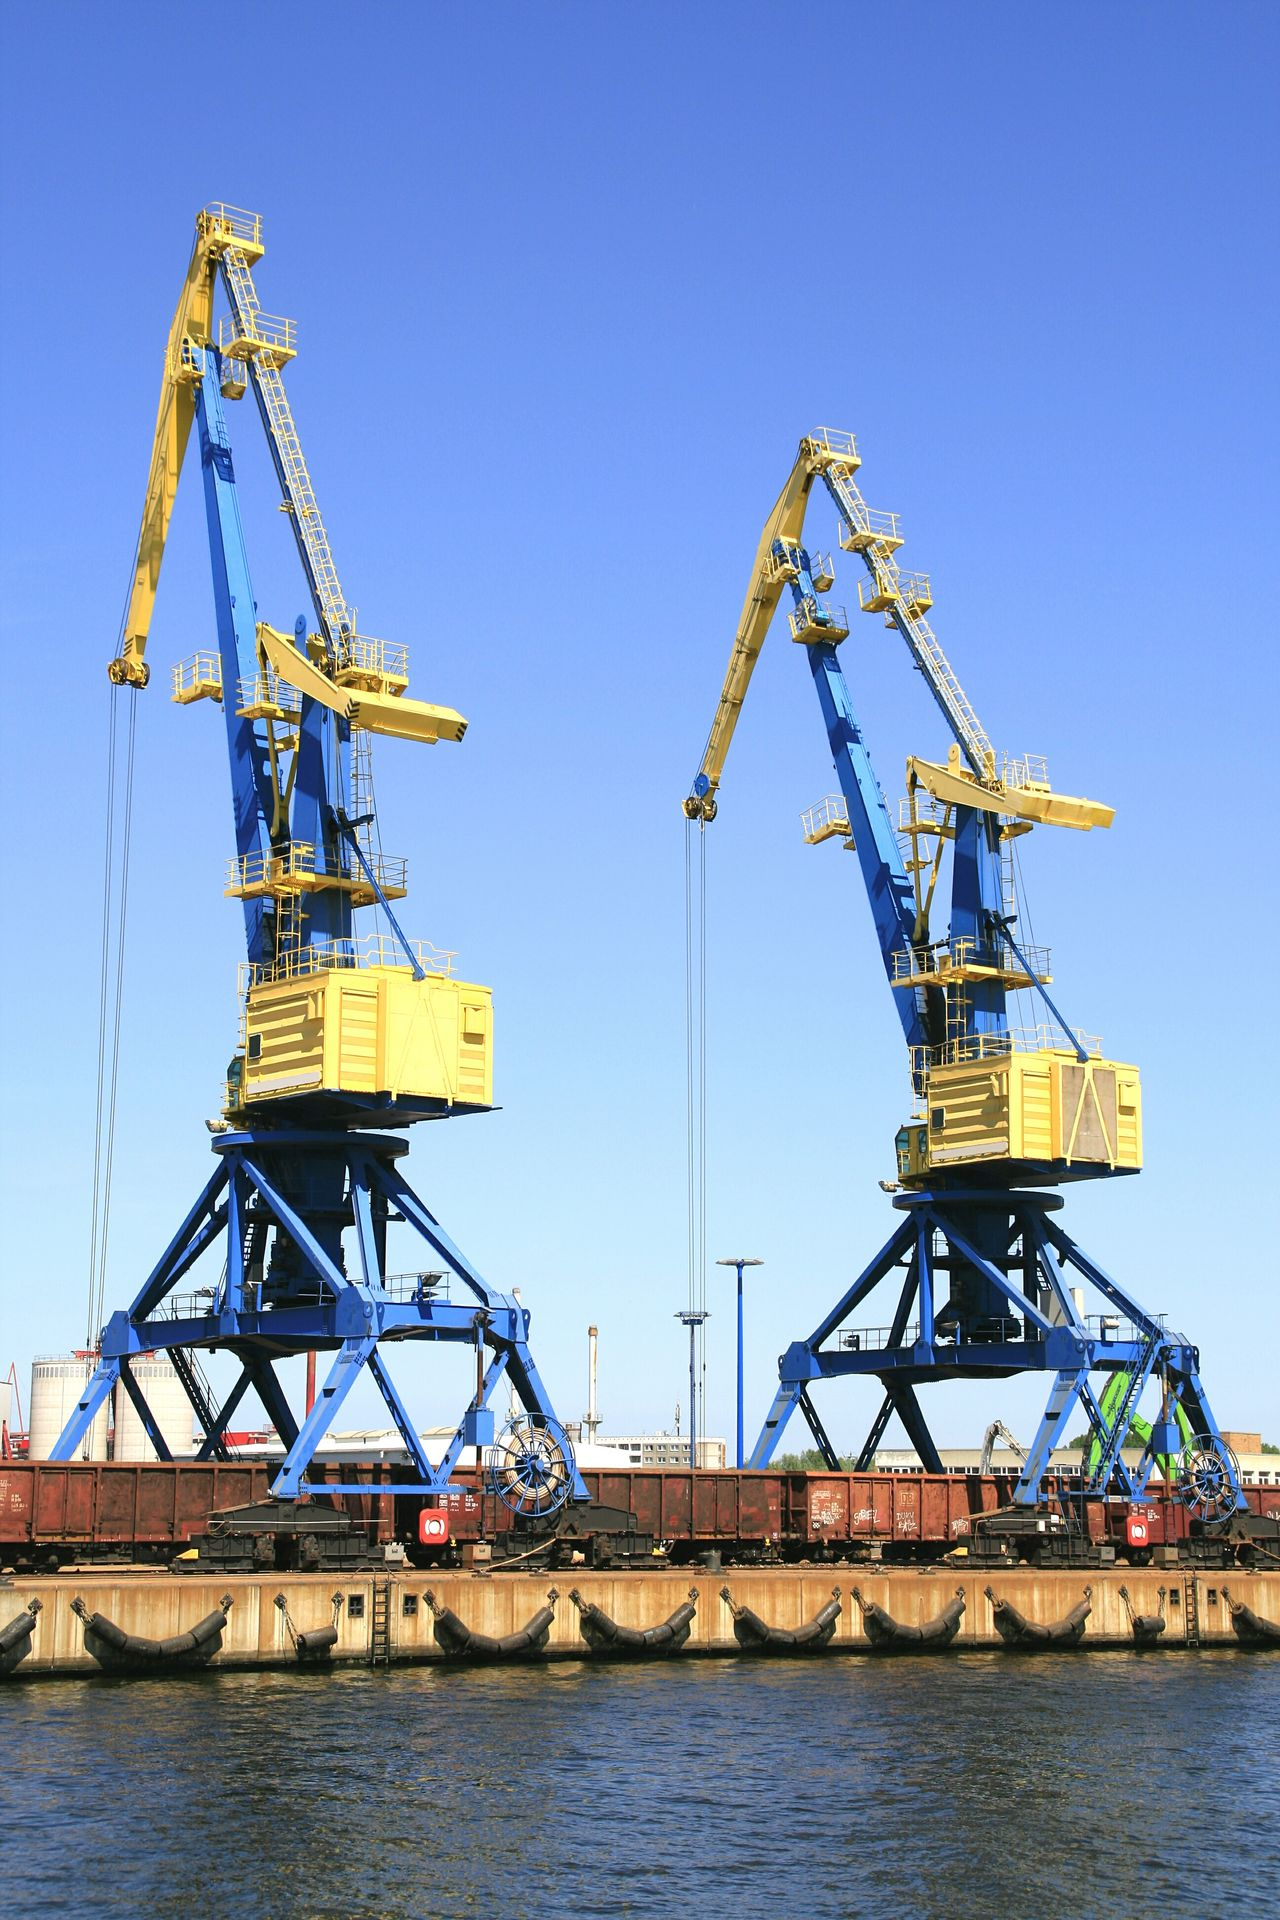 Crane - Construction Machinery Waterfront Commercial Dock Sea Low Angle View Clear Sky Outdoors Harbor Crane - Construction Machinery Waterfront Water Low Angle View Clear Sky Development Commercial Dock Sea Day Blue Outdoors No People Sky Harbor Crane Crane Truck